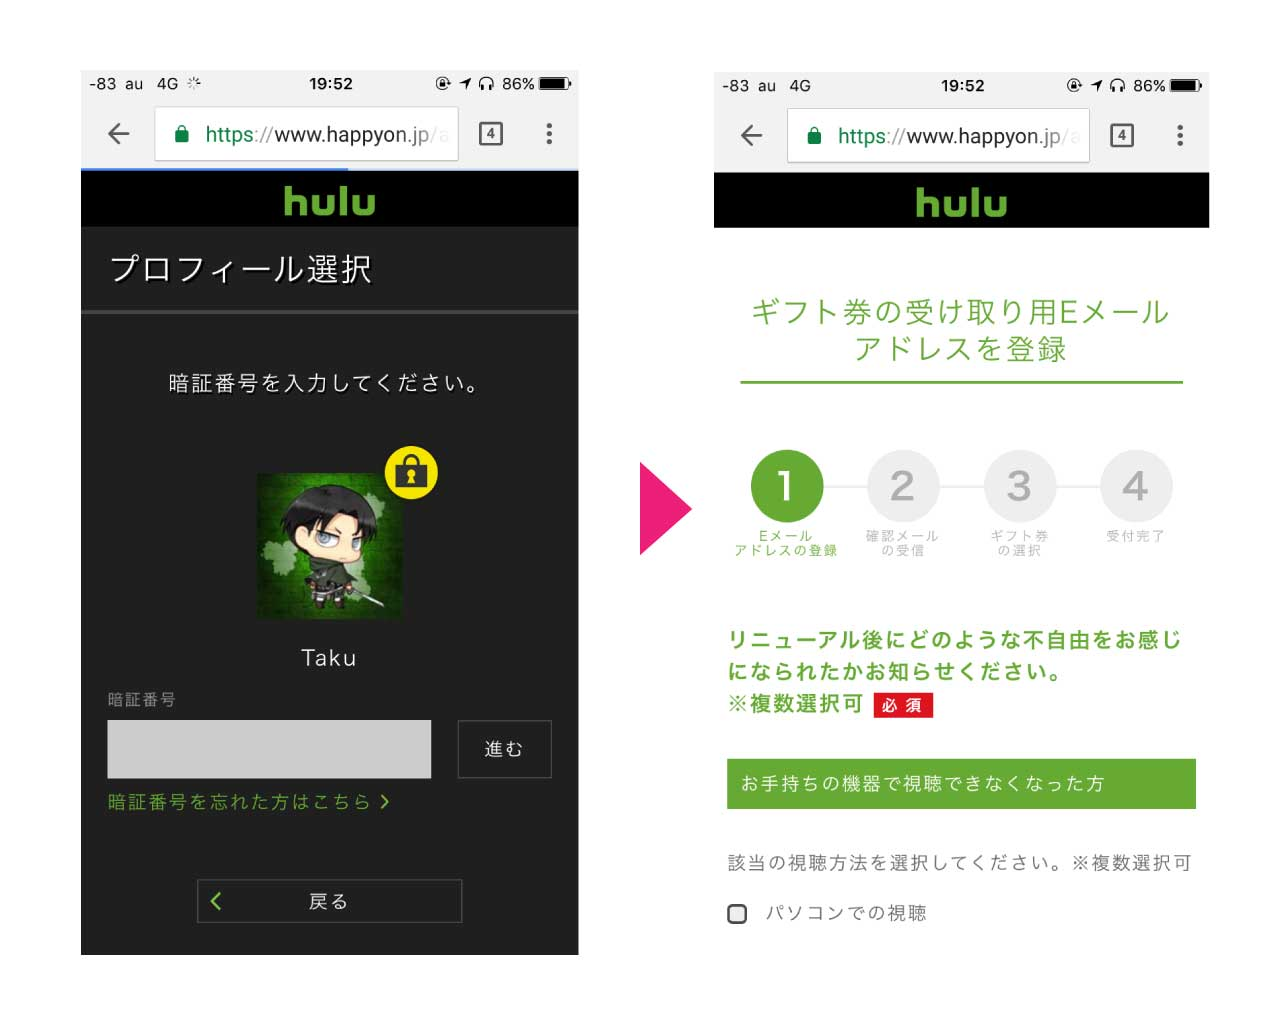 hulu-system-trouble-ticket-request-finish-3